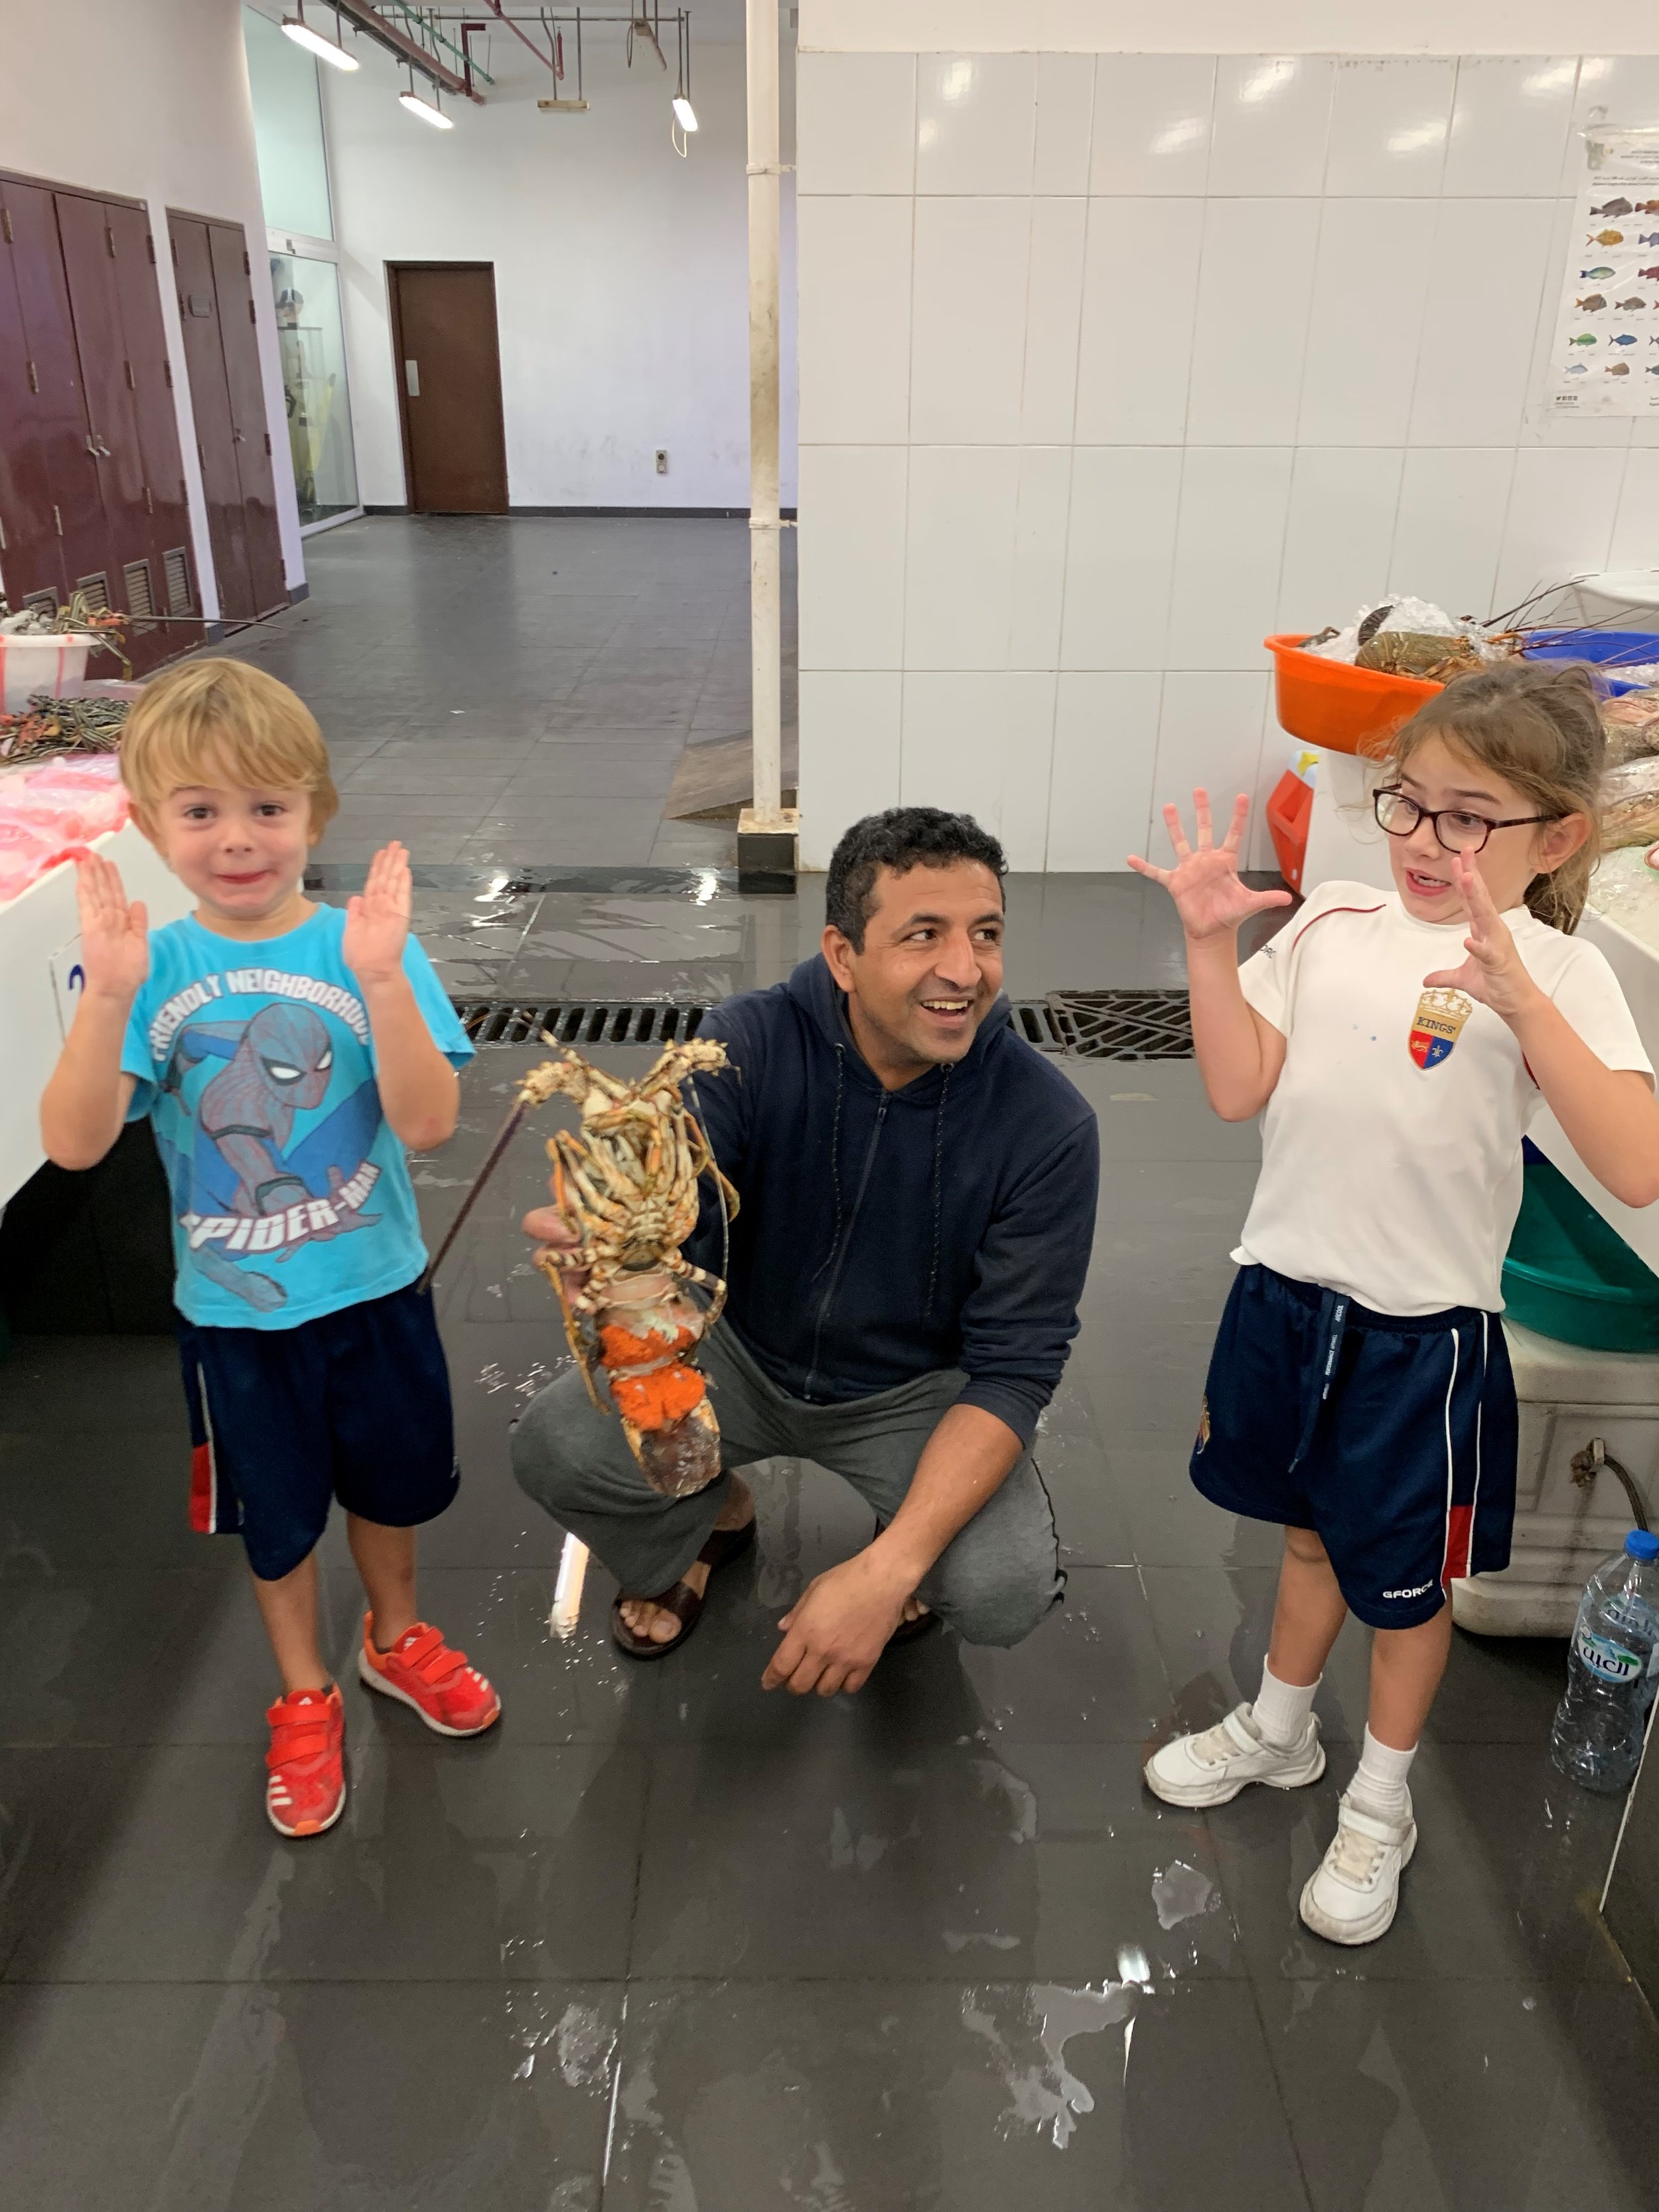 Fox and Leo rewarded with an ex-lobster at Jumeirah Fish Market following a sunset jog